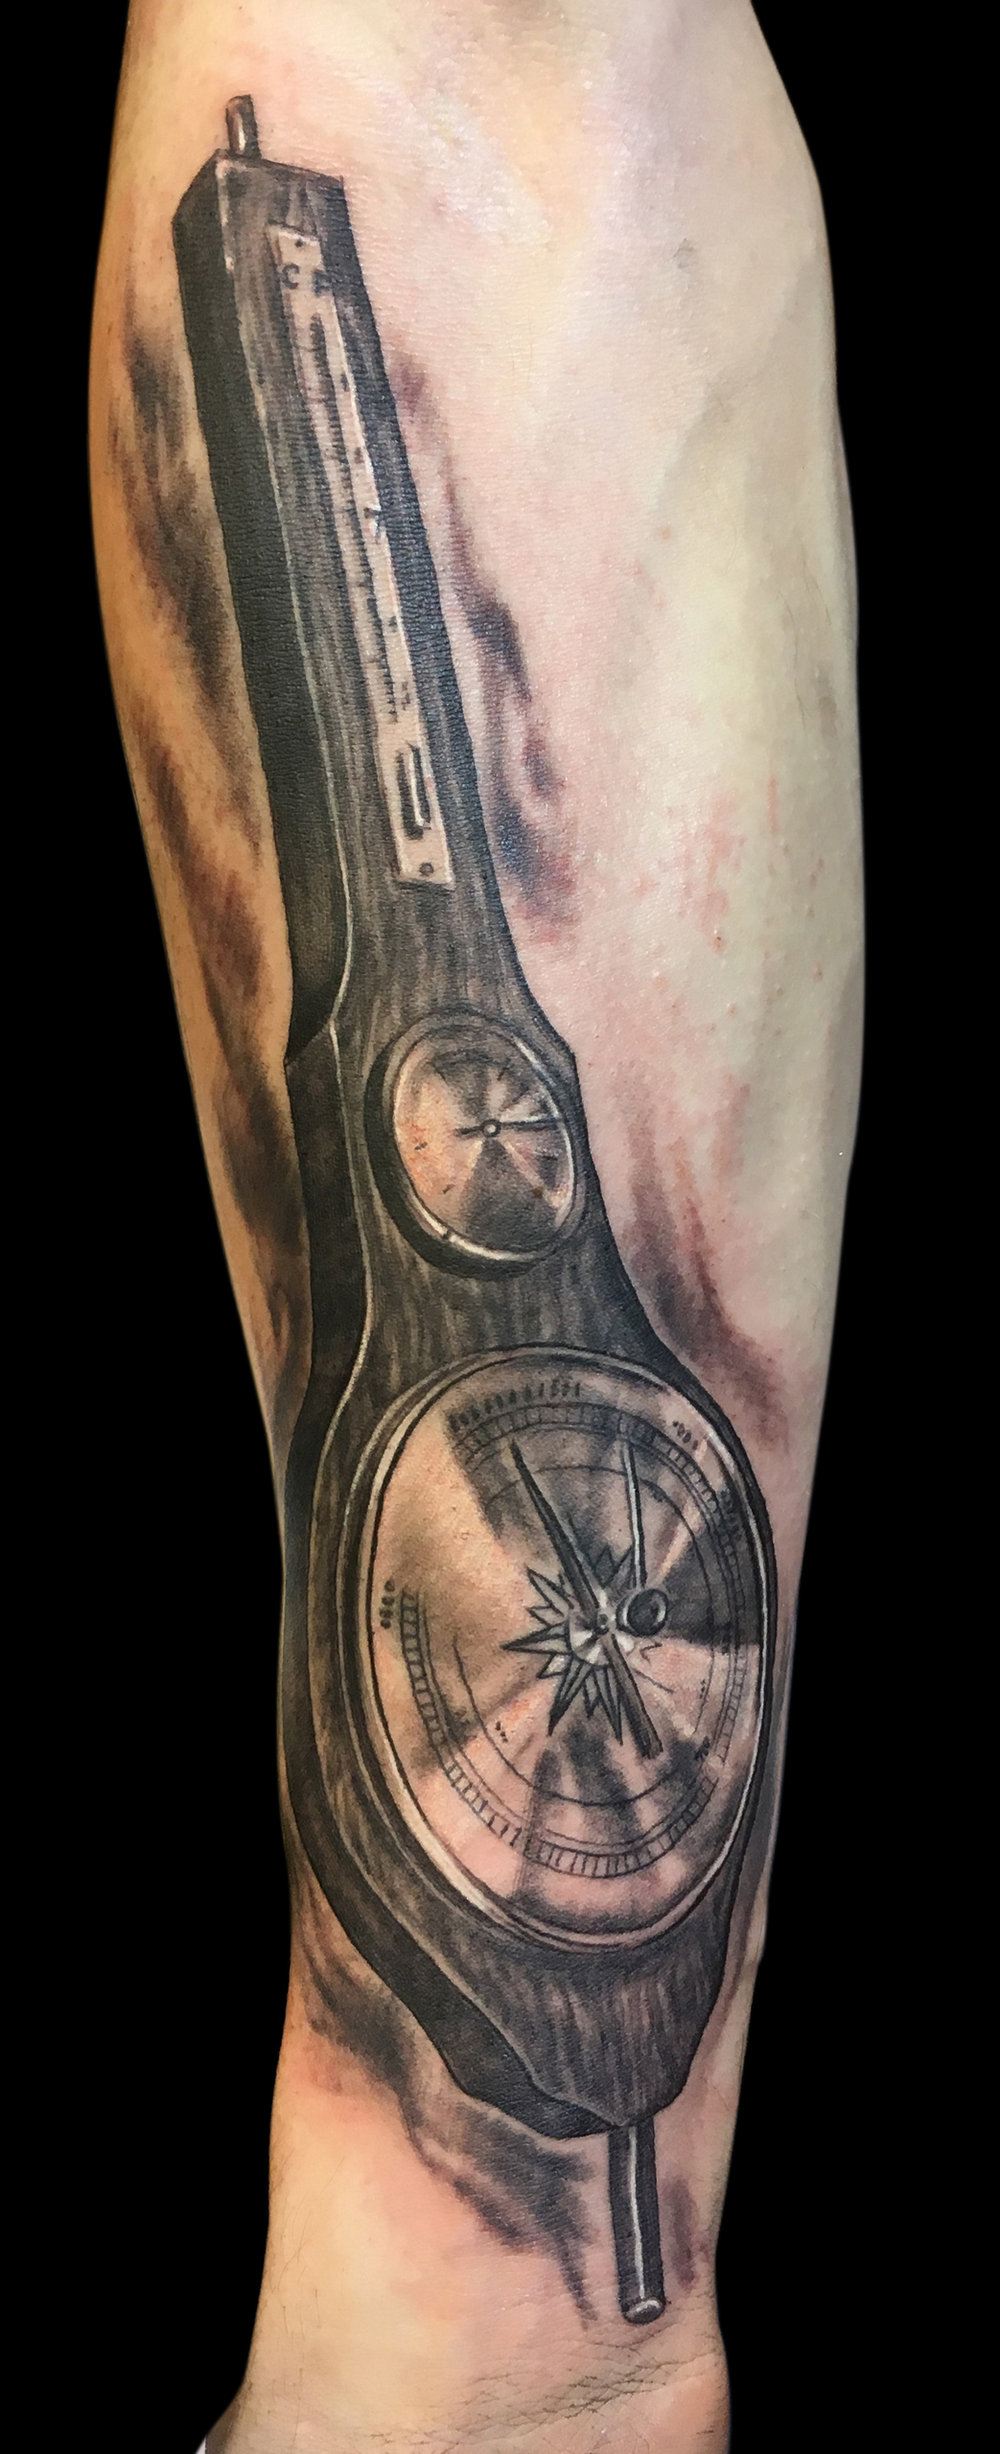 Black and Grey Barometer, Thermometer, Compass Tattoo, (fresh) Antwerp, Belgium